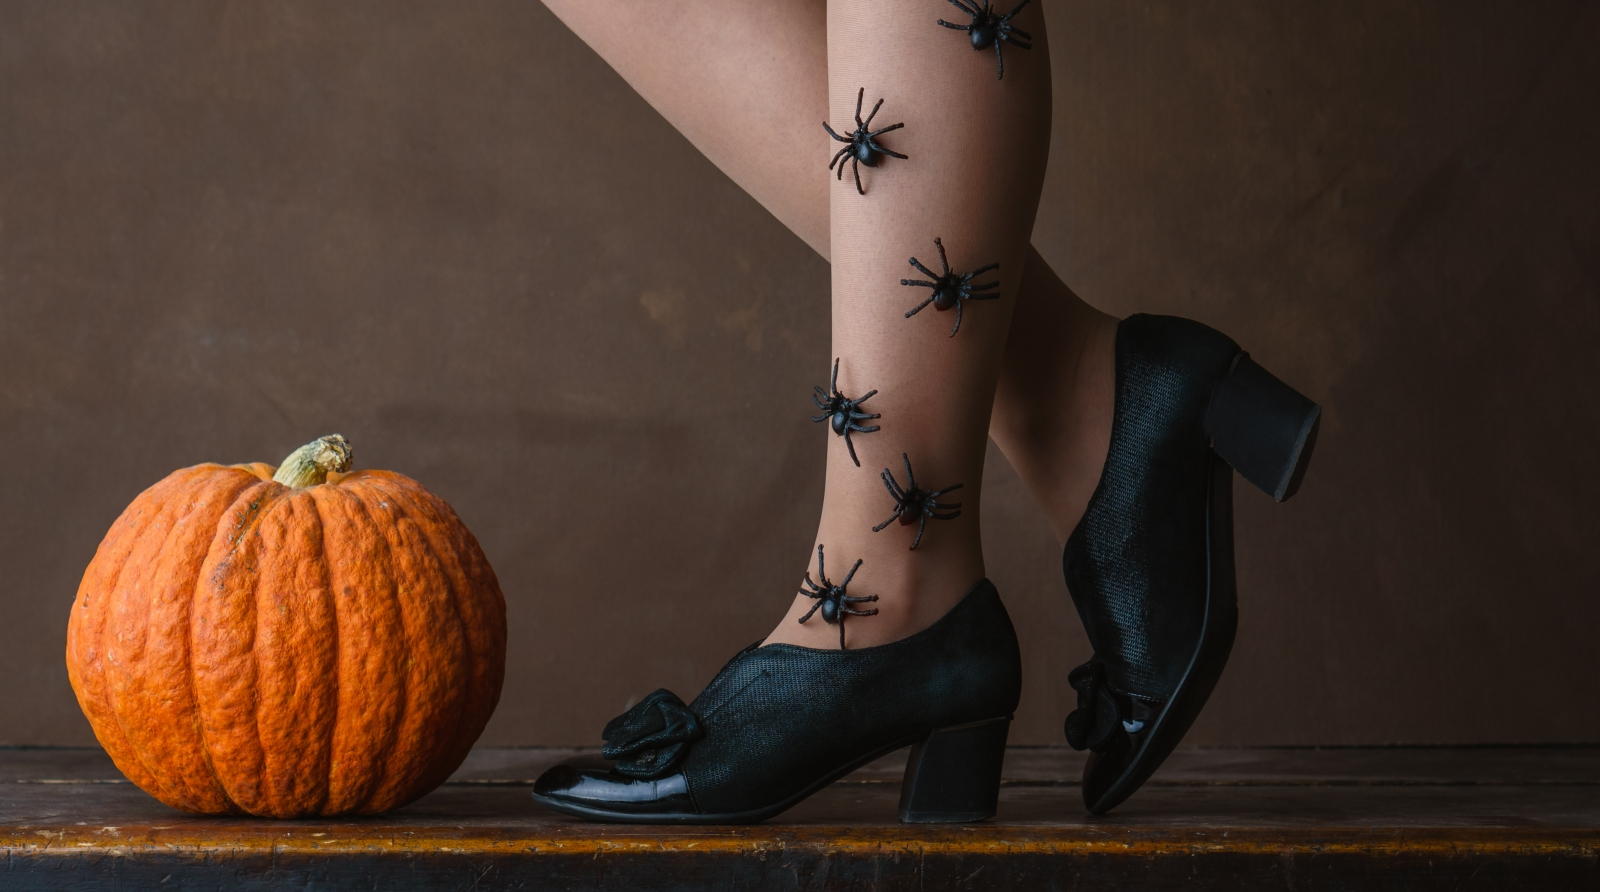 Vintage shoes, a pumpkin, and spiders make this vintage Halloween photo. Courtesy LMproduction/Fotolia.